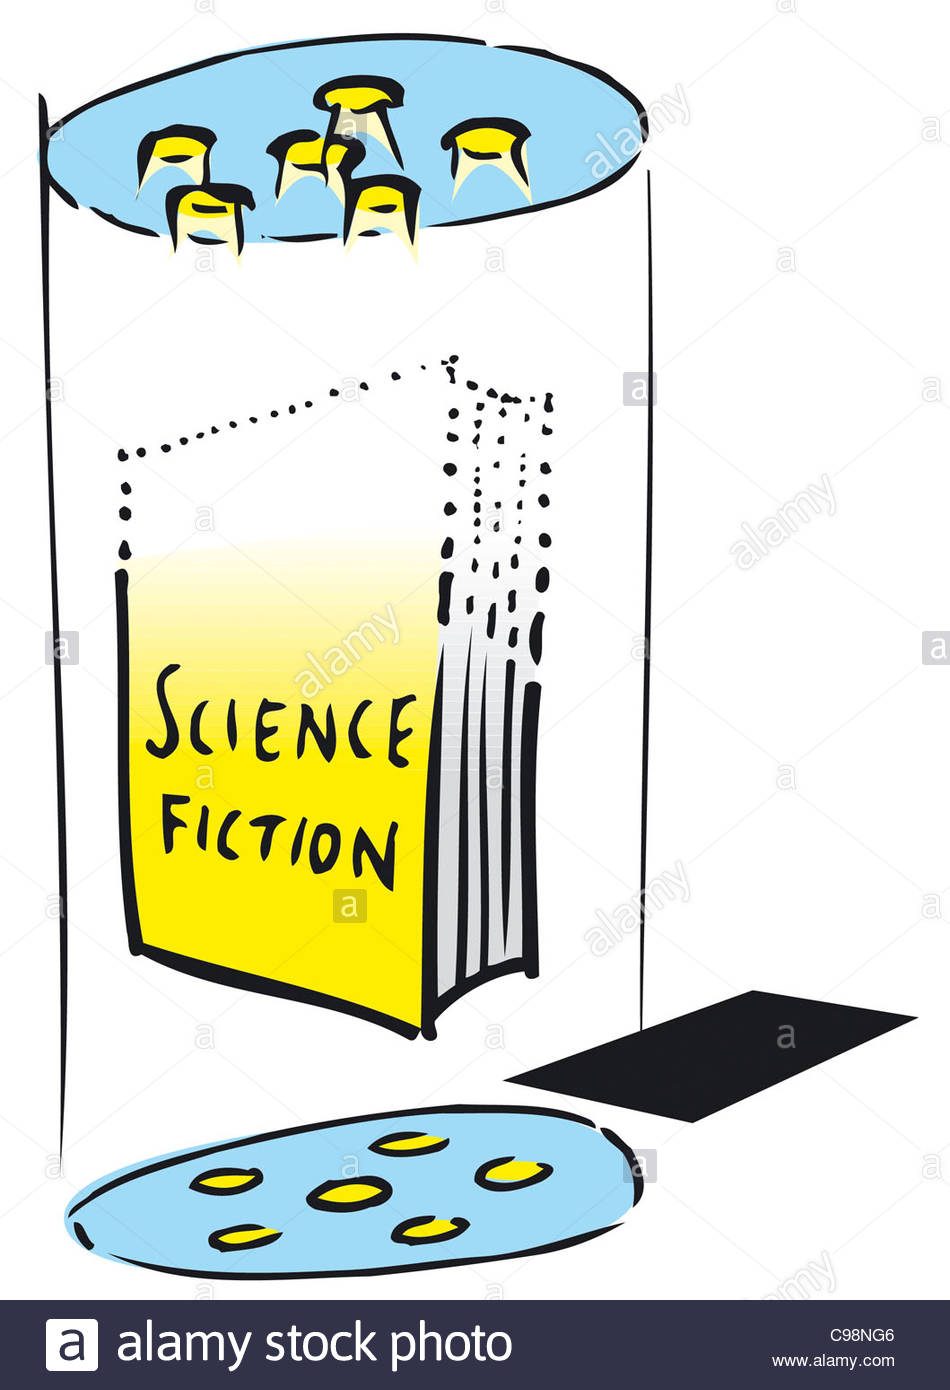 hight resolution of livre science fiction lektre lire les lecteurs lecture bookworms bookworm recomme photo stock